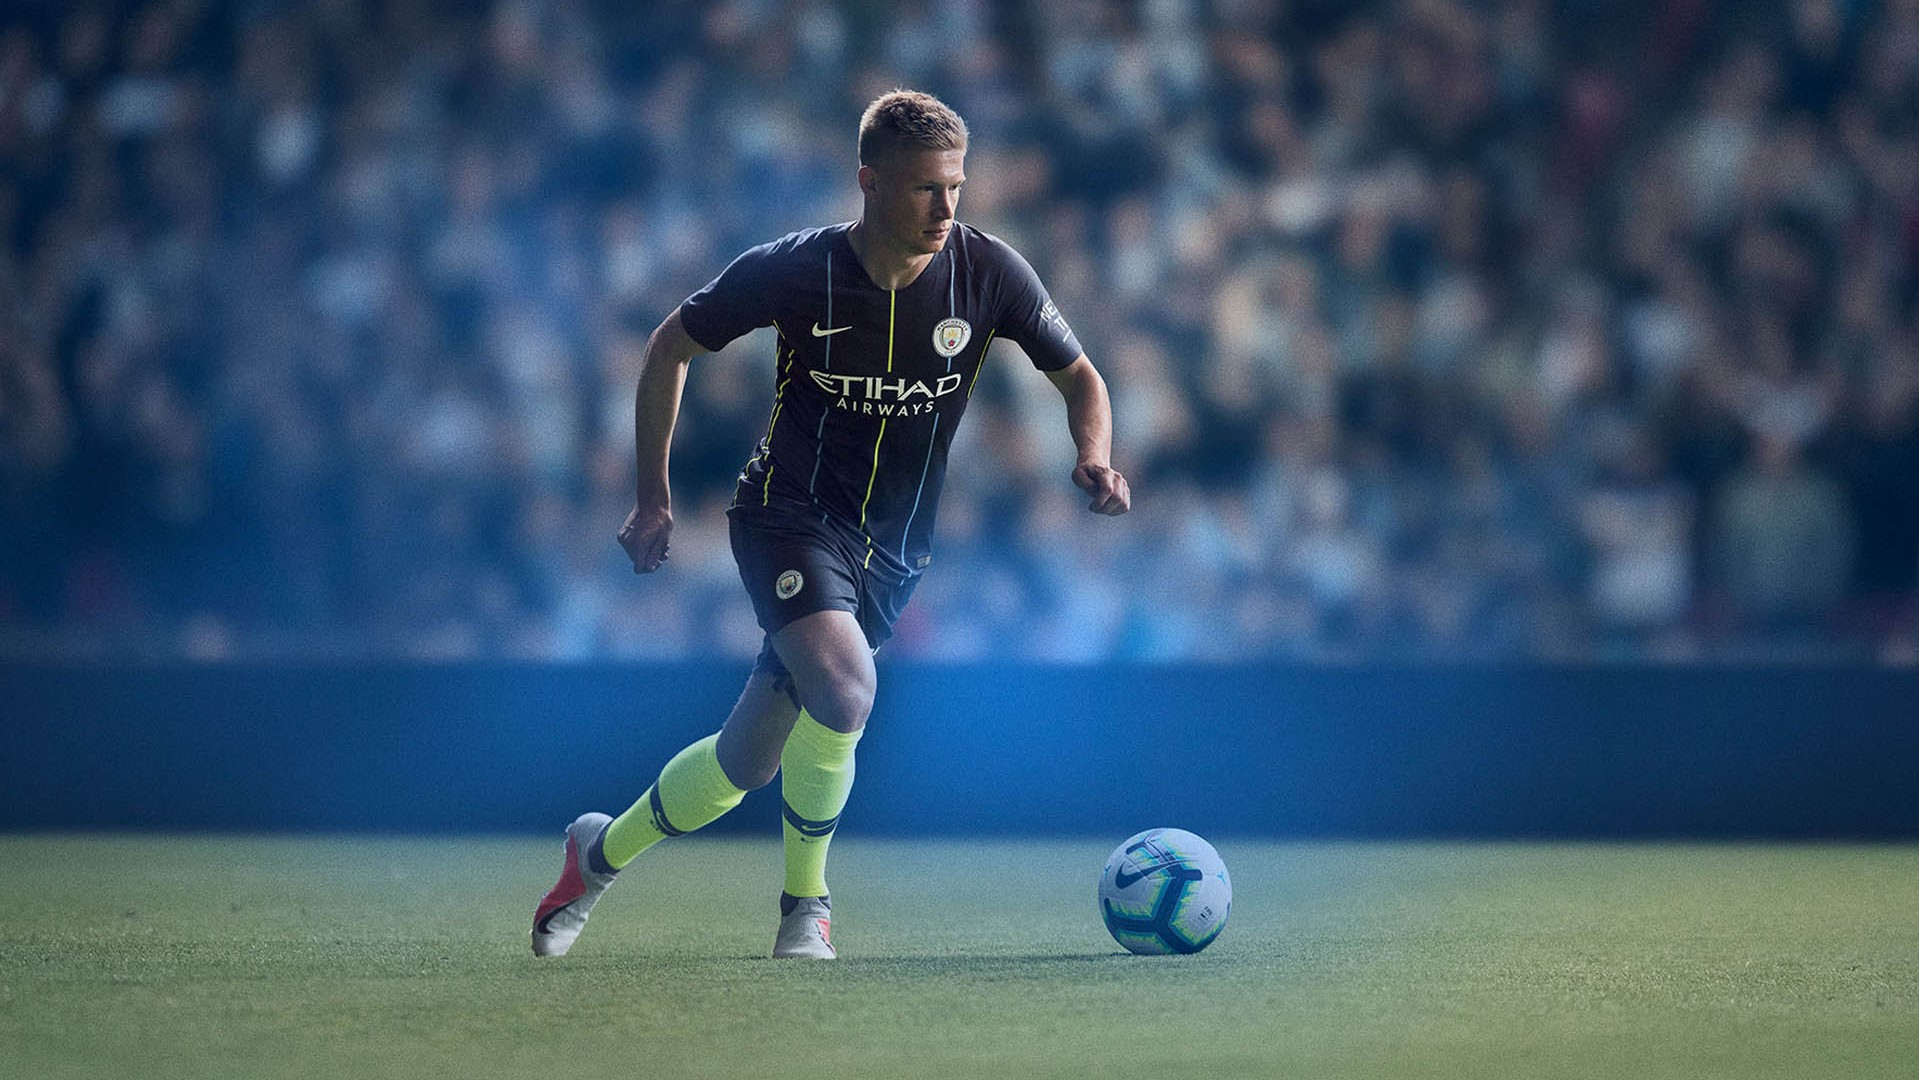 Manchester City Away Kit 2018/19